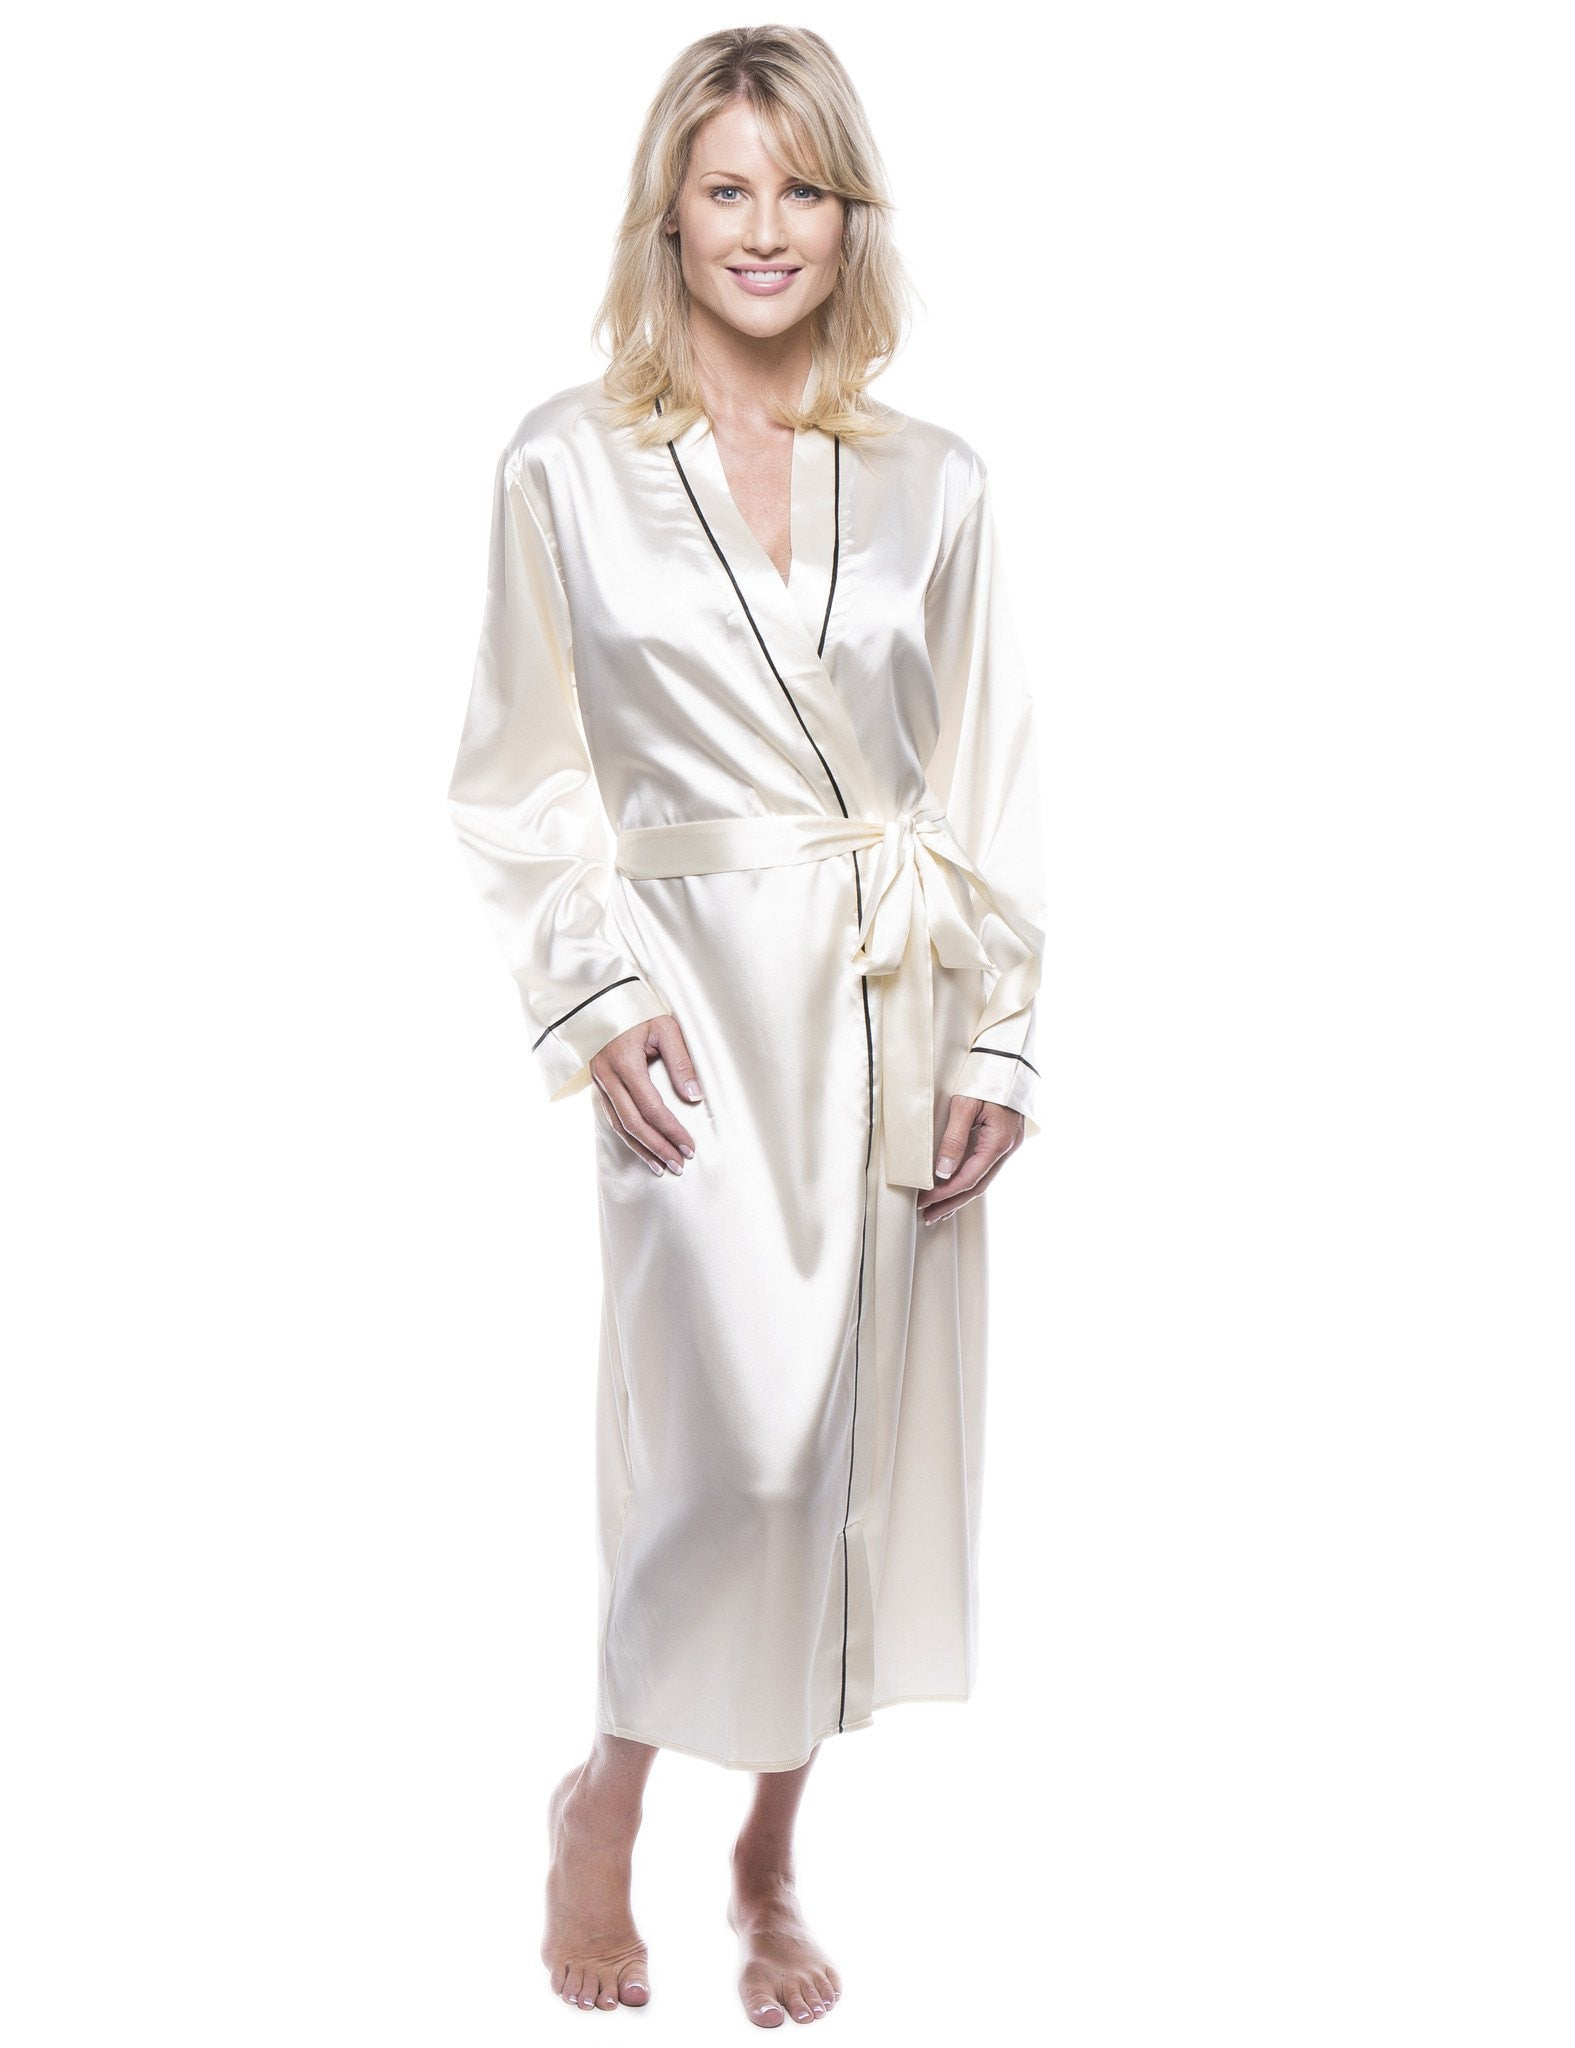 49562184930ca Women's Classic Satin Robe - Cream. Women